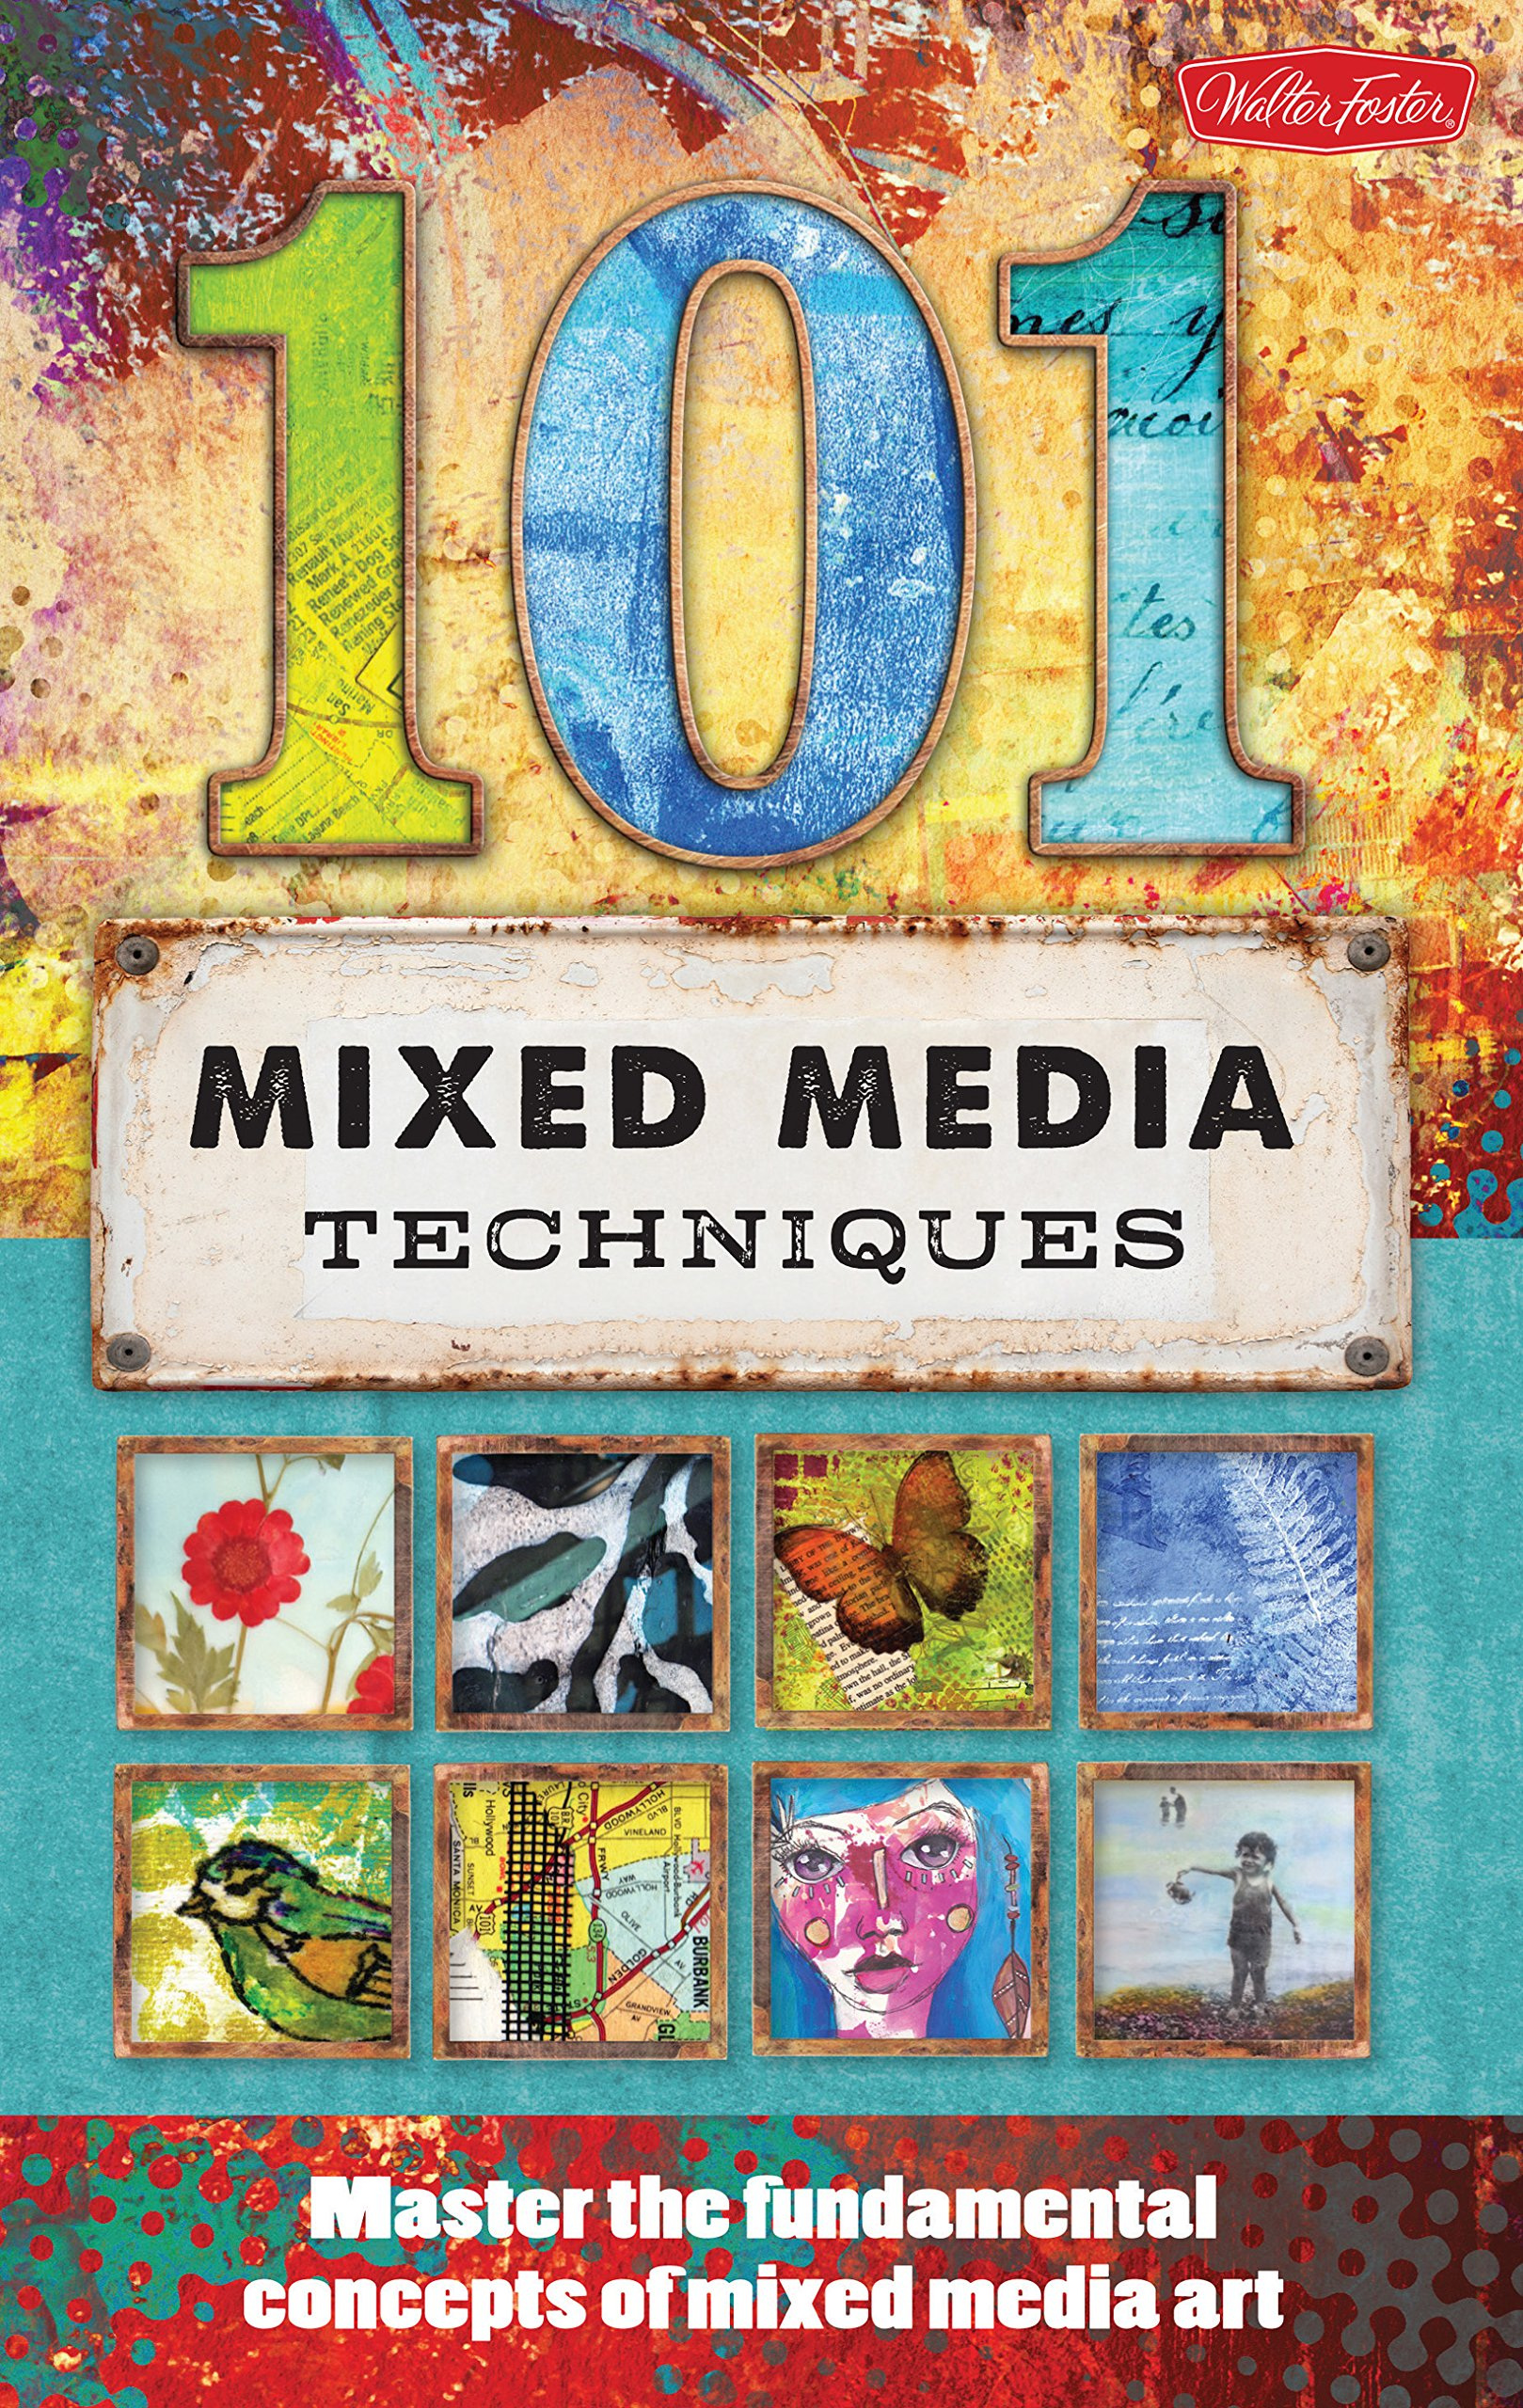 101 Mixed Media Techniques: Master the fundamental concepts